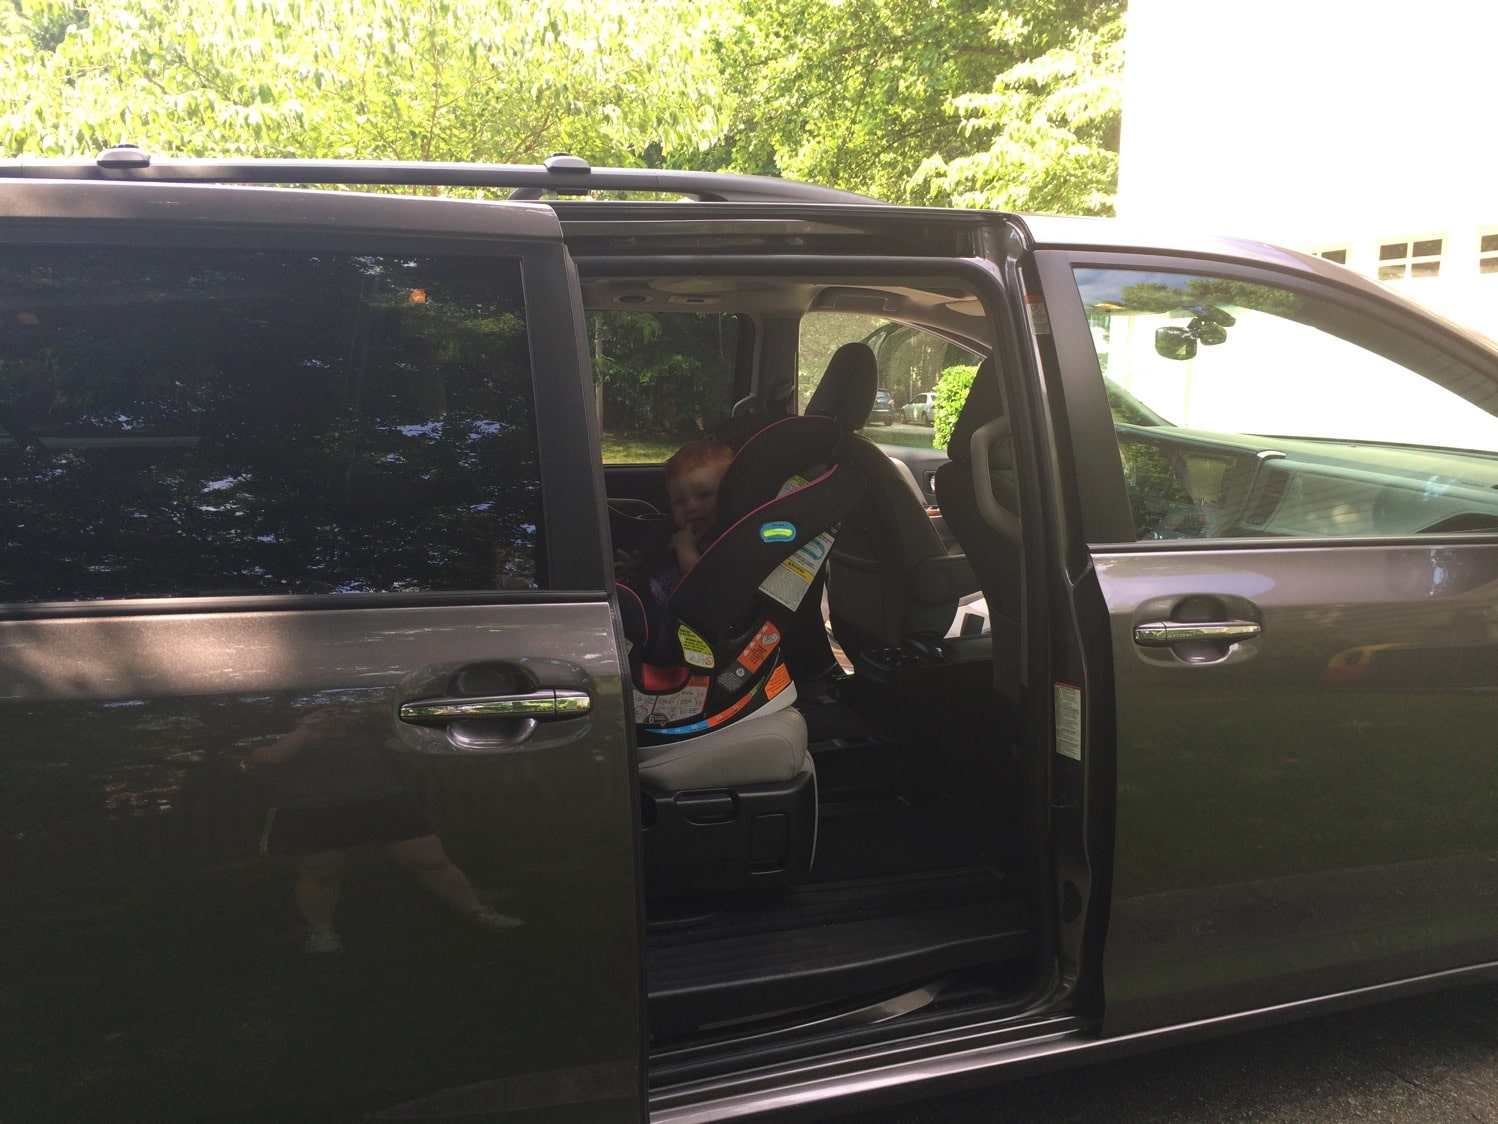 2015 Toyota Sienna Review by Mom of 4